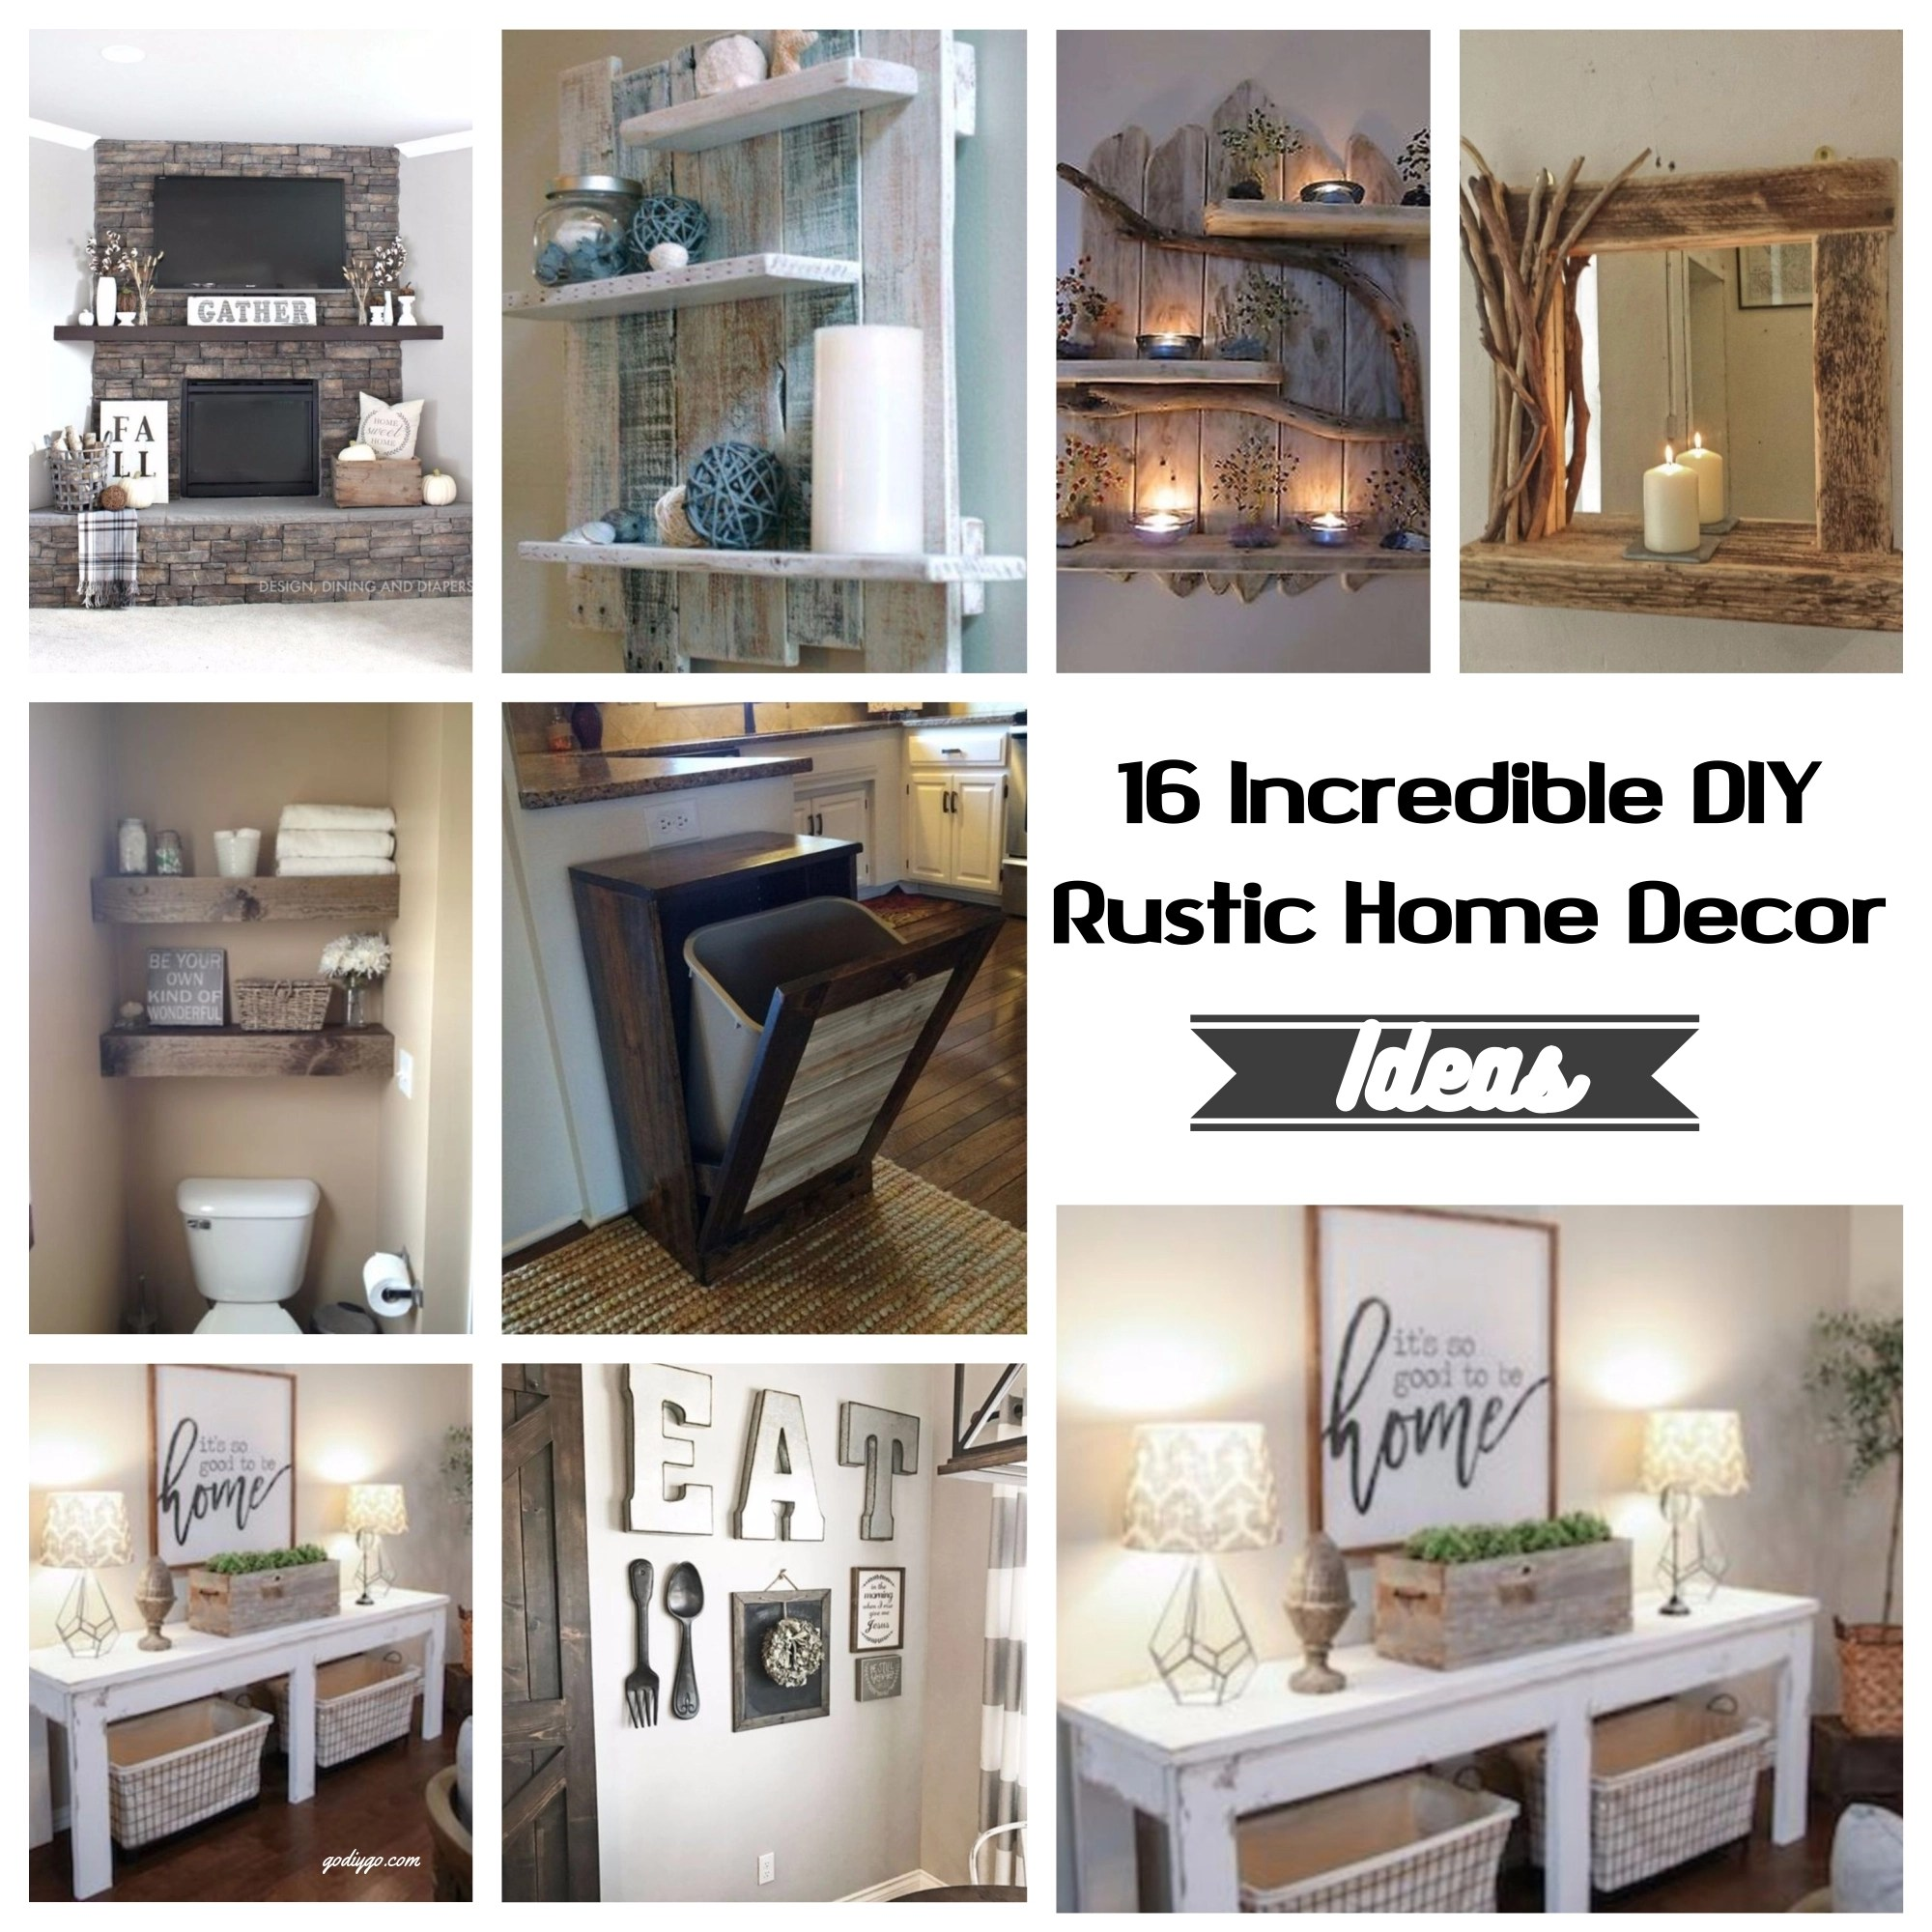 Diy Rustic Home Decor Ideas Part - 40: Whether You Live In The Country Or Your Home ...